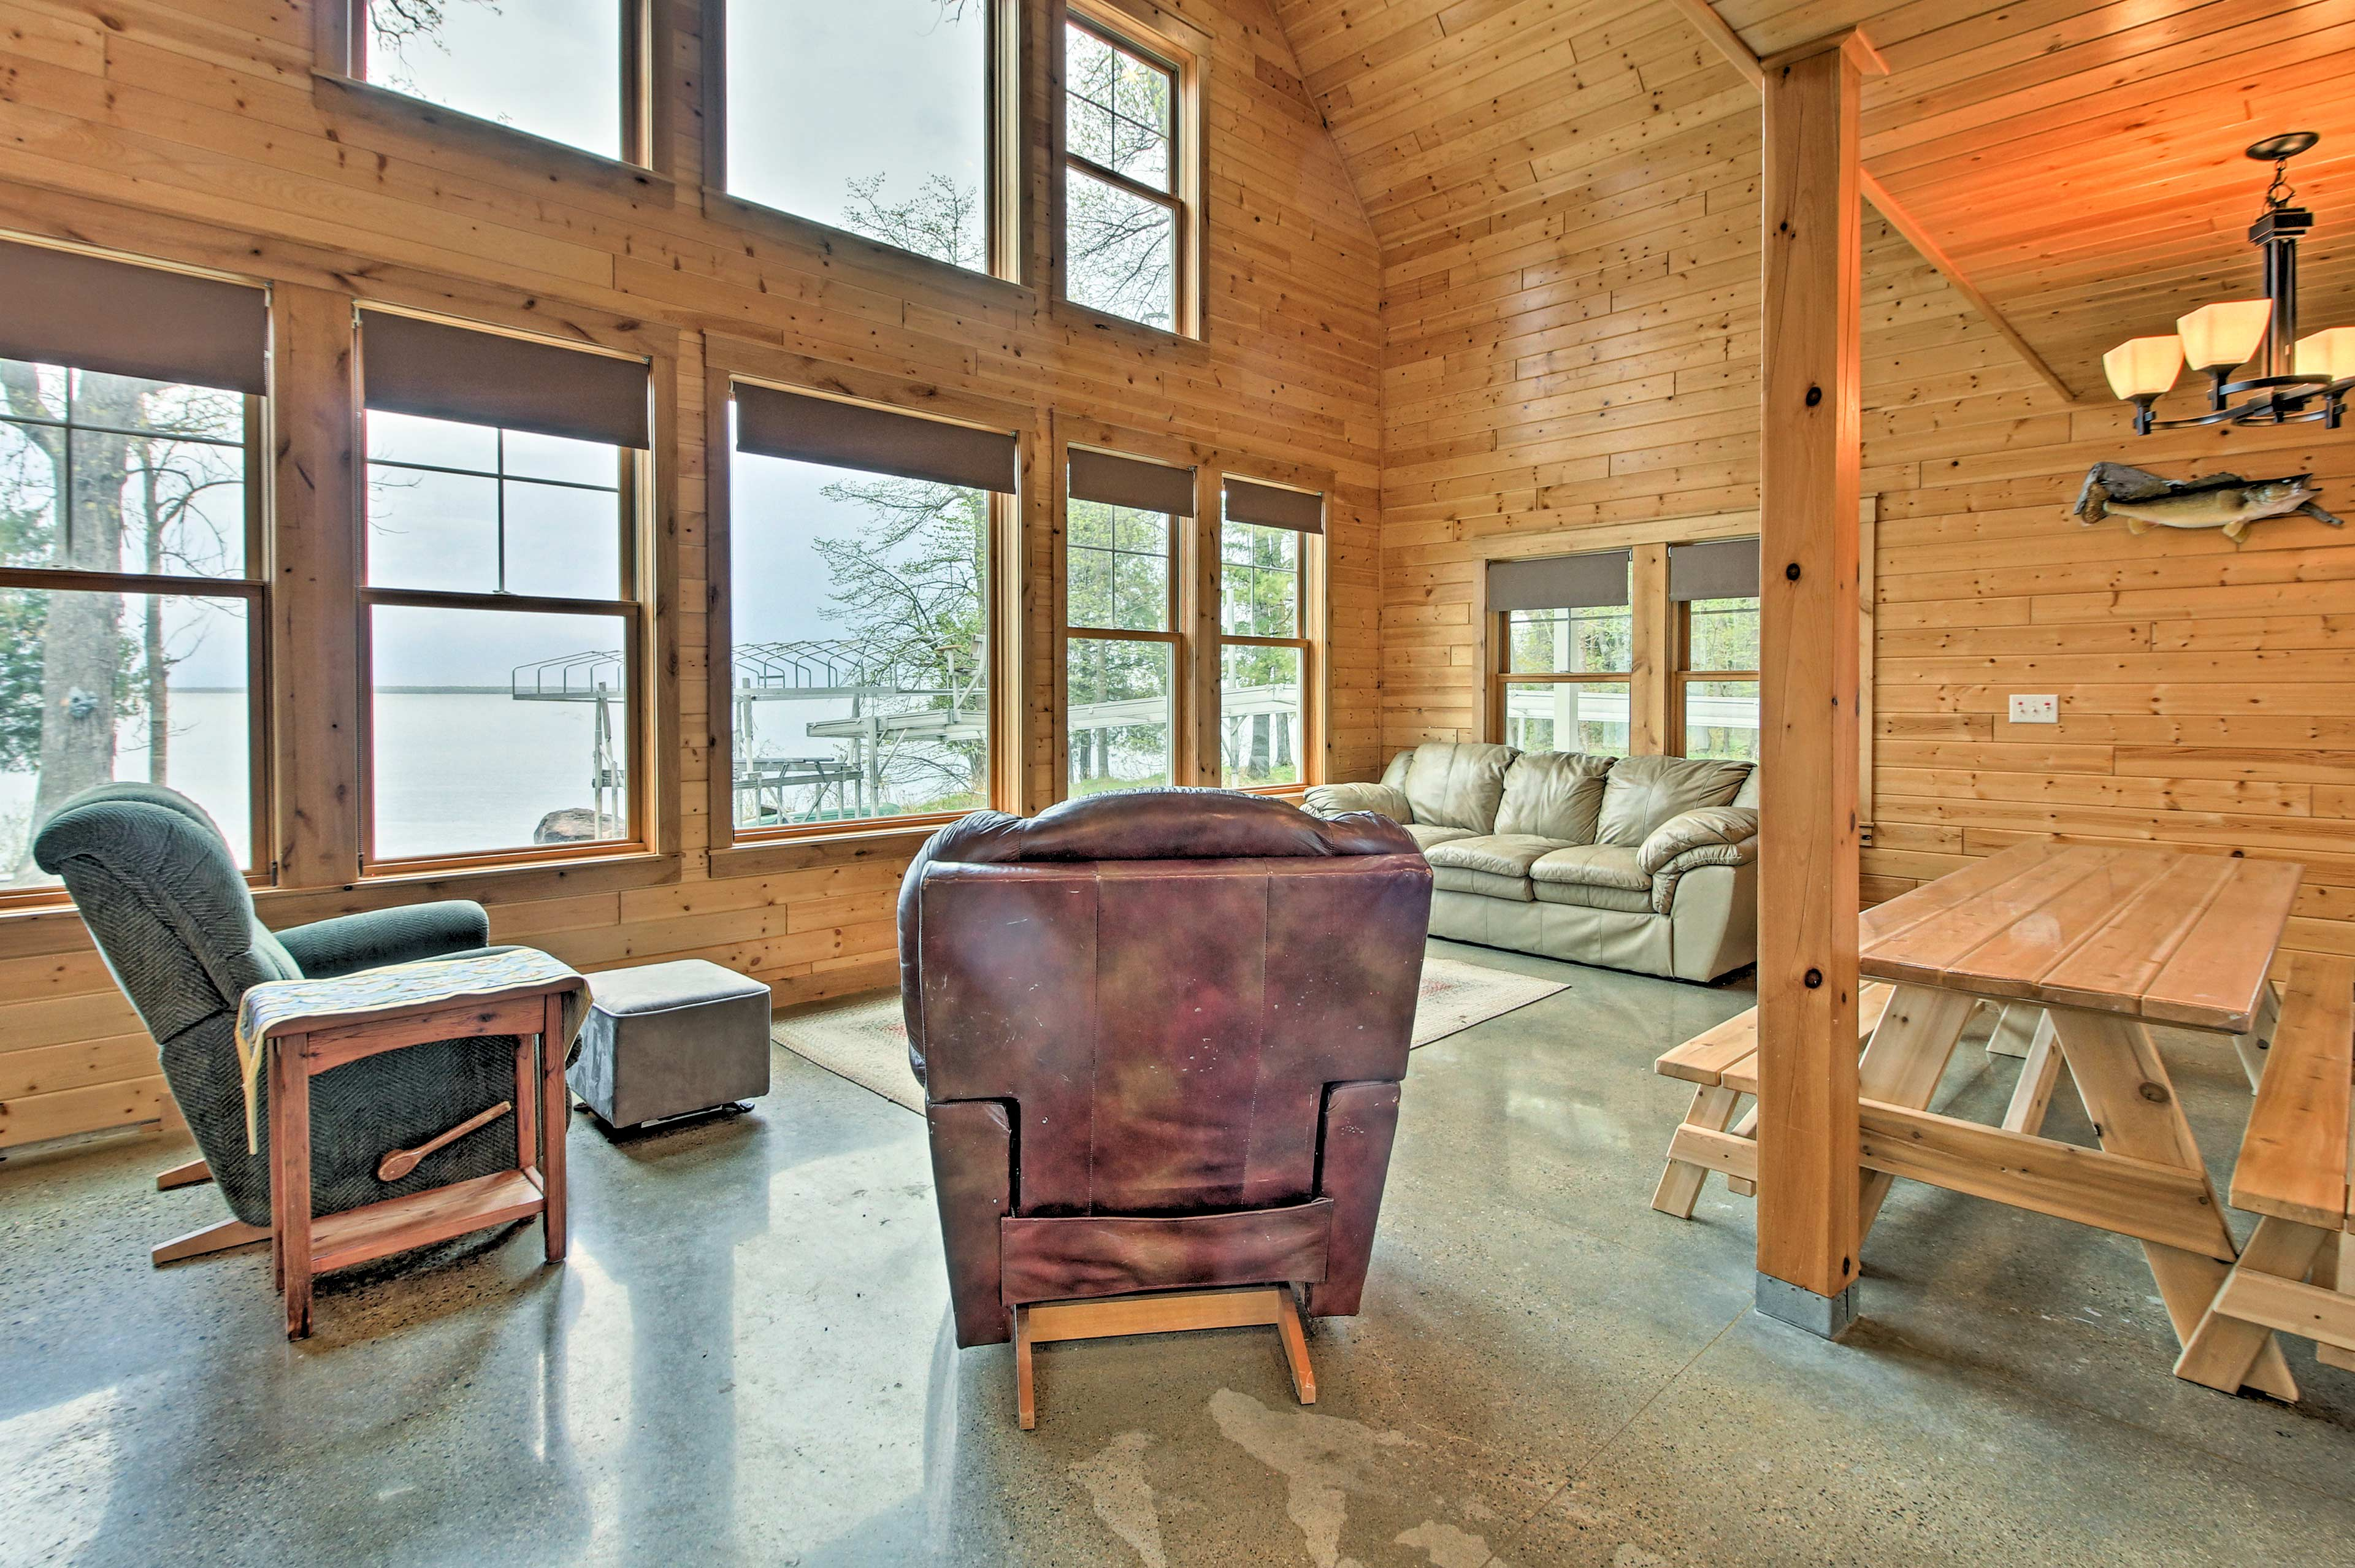 This property offers over 1,100 square feet of beautiful living space.